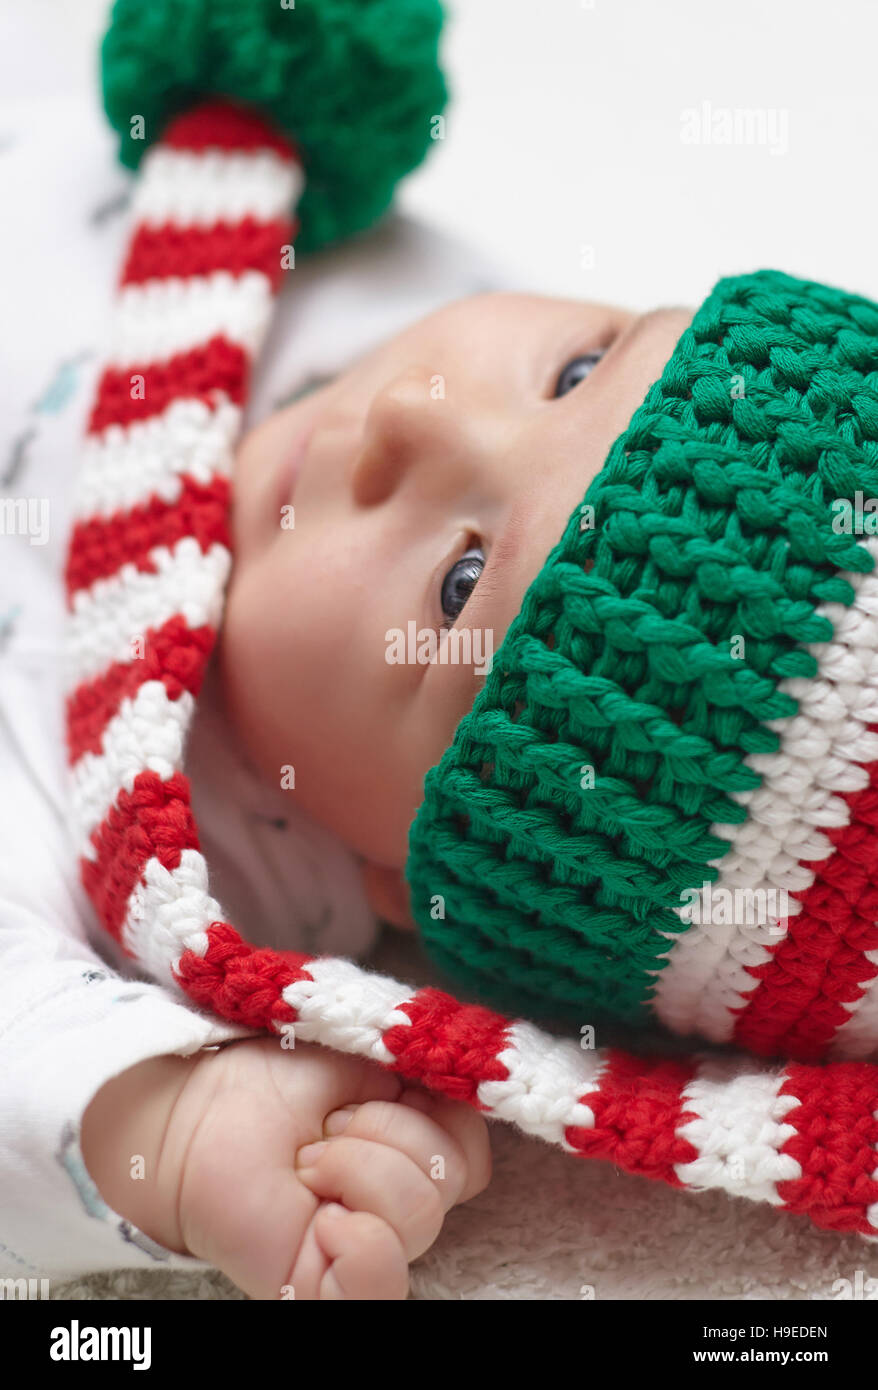 6161527fef7 Knitted Santa Claus Stock Photos   Knitted Santa Claus Stock Images ...